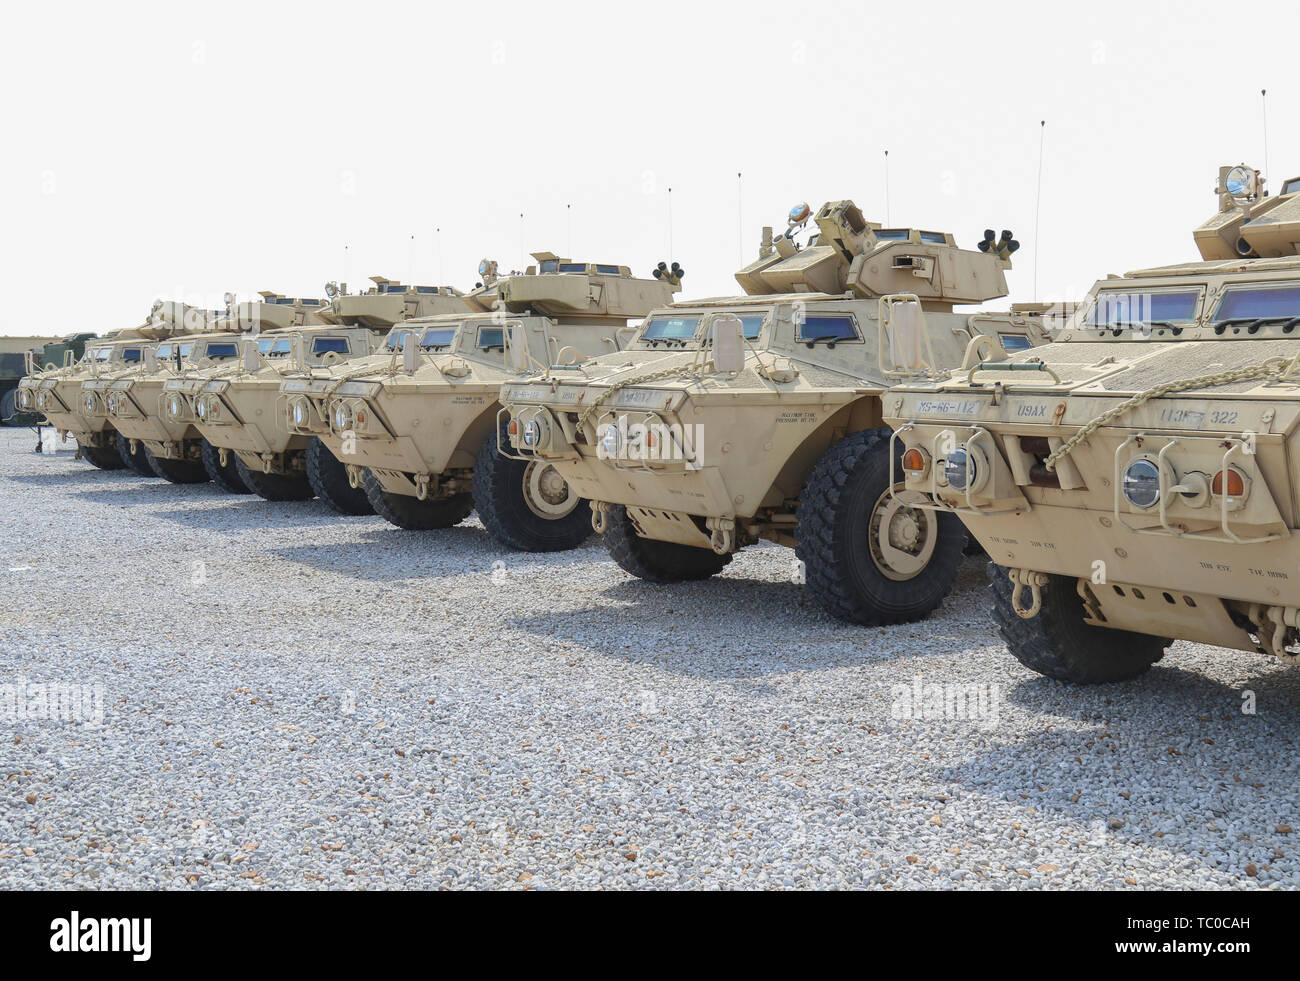 Armored Security Vehicles of the 113th Military Police Company, Mississippi Army National Guard, are staged prior to a training exercise May 31, 2019 at Camp McCain, Mississippi. The vehicles are being used for Ardent Sentry 2019, a North American Aerospace Defense Command and U.S. Northern Command exercise focused on defense support of civil authorities during a simulated New Madrid Seismic Zone 7.7 magnitude earthquake. (Mississippi Army National Guard photo by PFC Austin Eldridge) - Stock Image